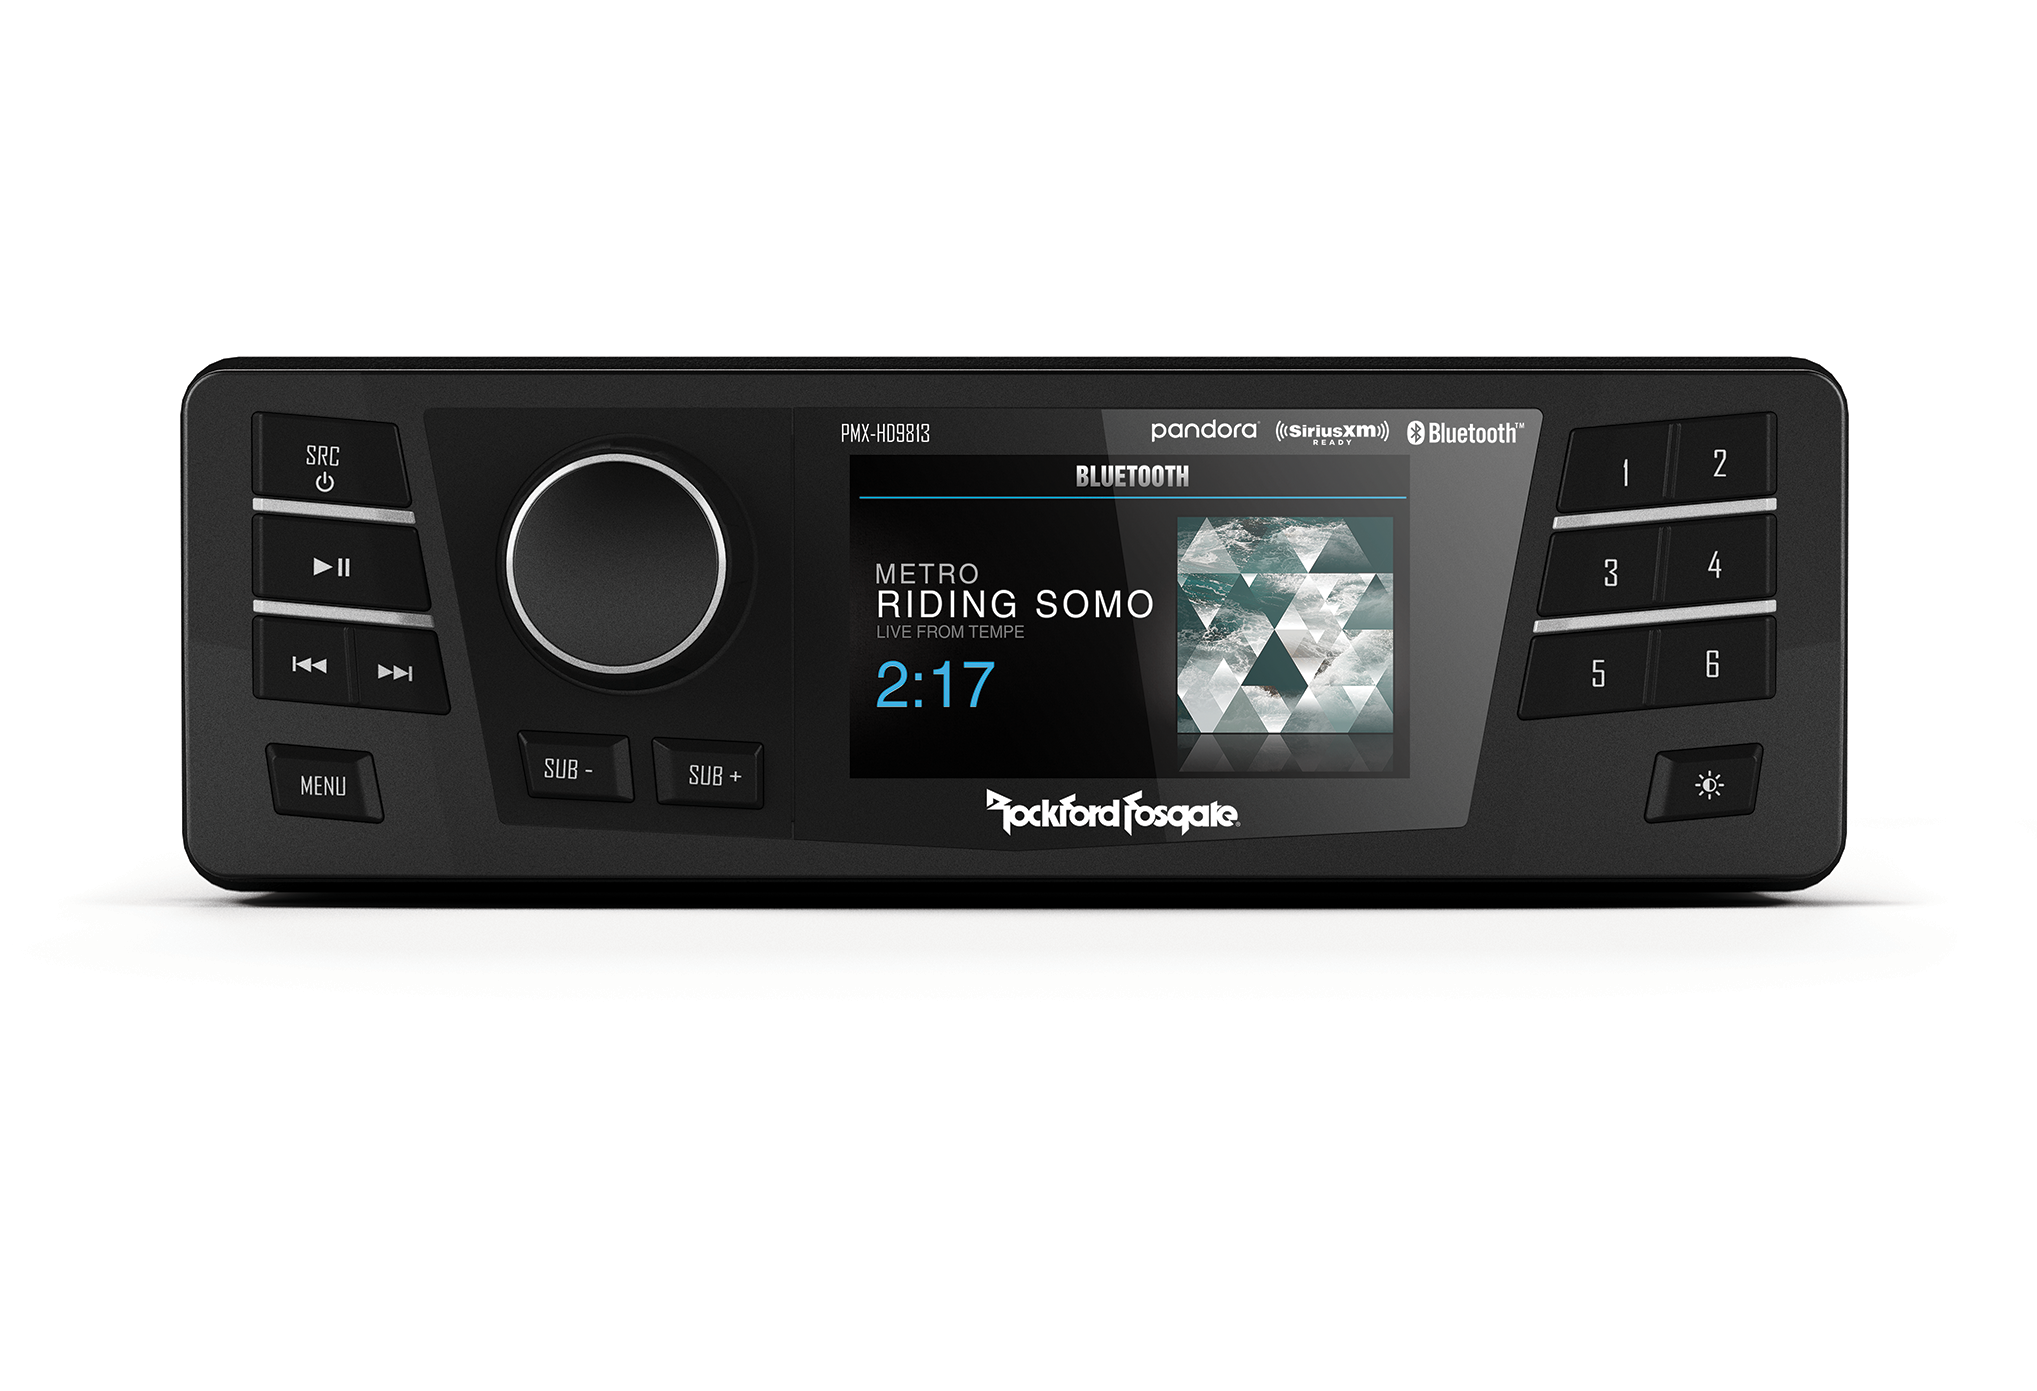 Is the New Rockford Fosgate Digital Media Receiver Worthy of Your Harley-Davidson?